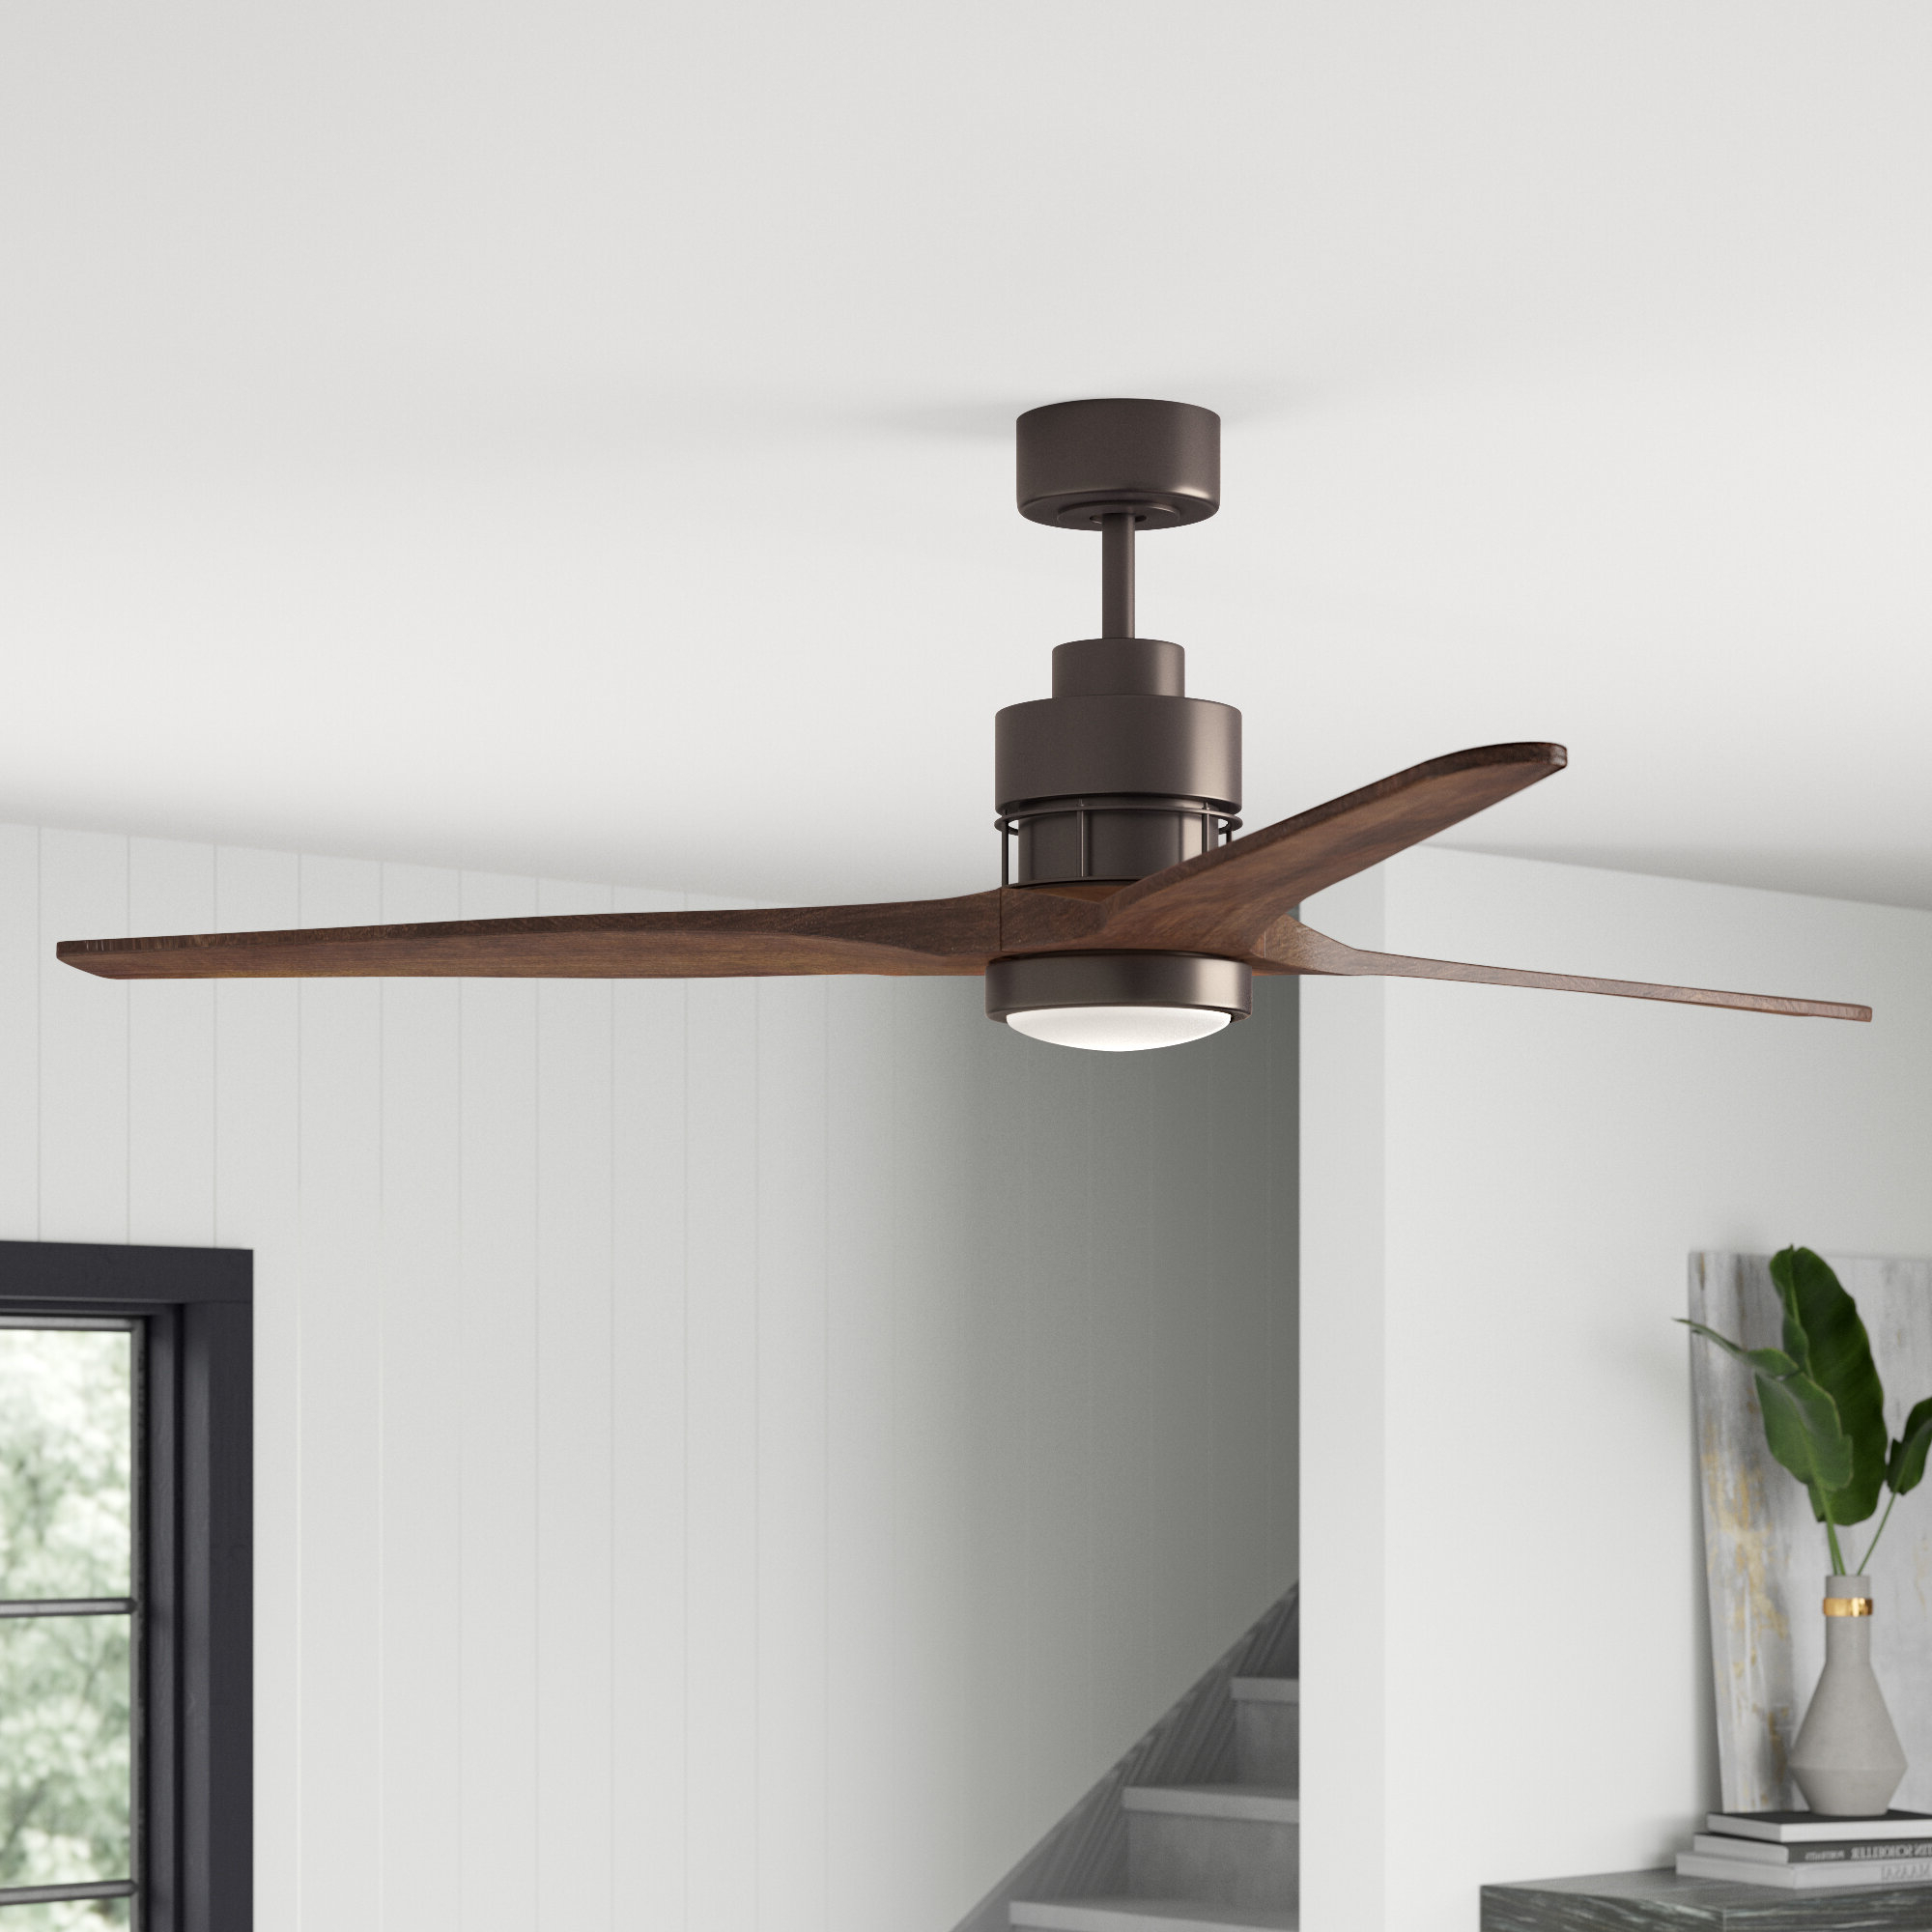 """70"""" Mcdaniels 3 Blade Led Ceiling Fan With Remote, Light Kit Included Inside Most Popular Corsa 3 Blade Ceiling Fans (Gallery 12 of 20)"""